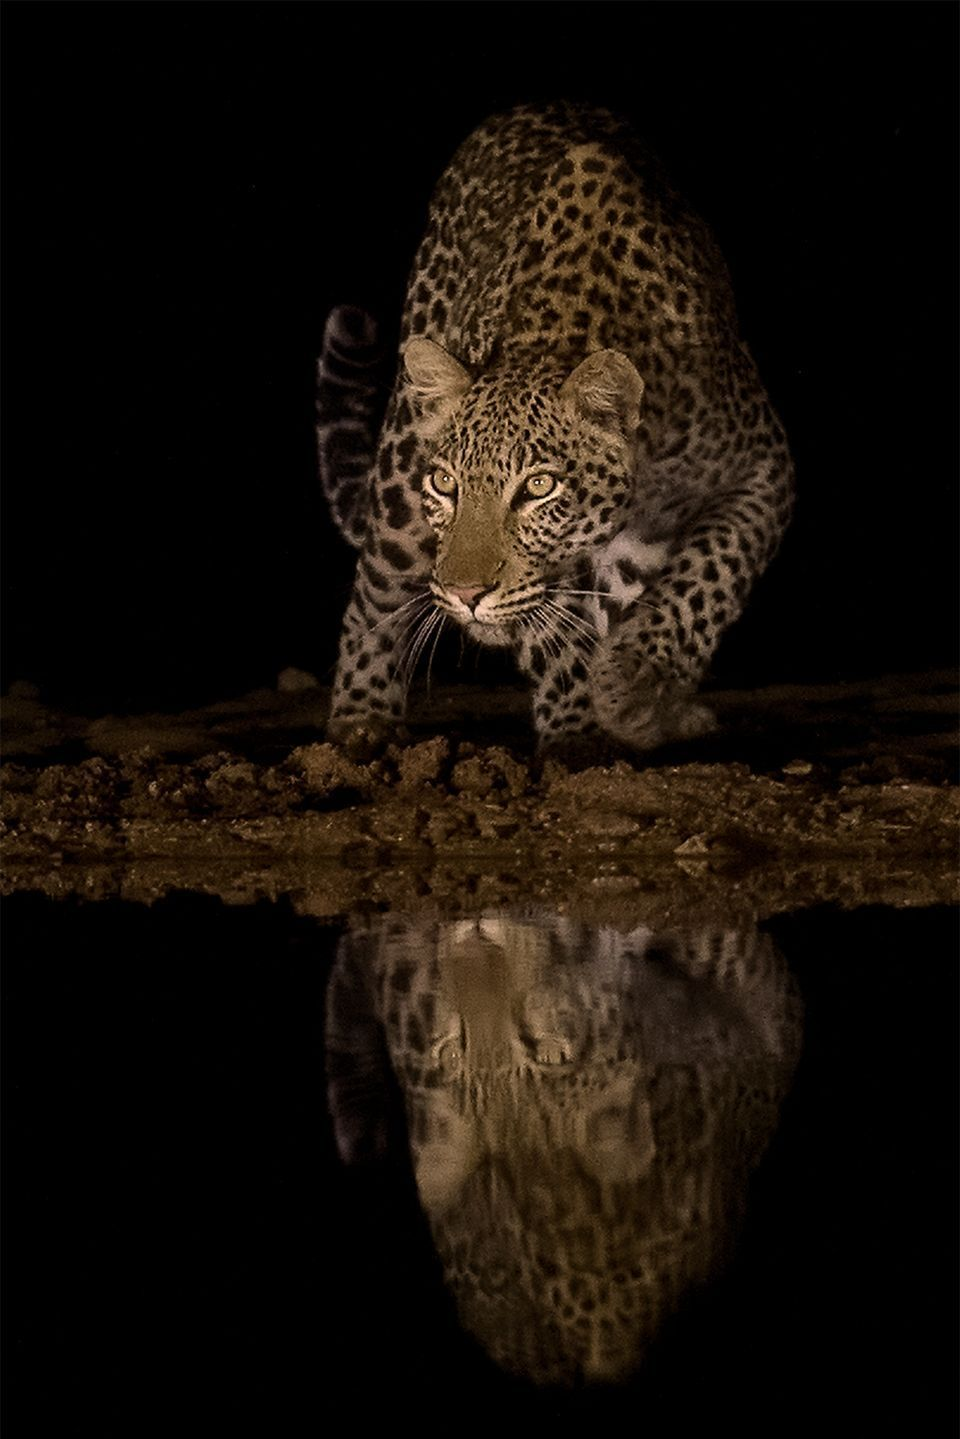 National Geographic Nature Photographer Of The Year 2017 2017 National Geographic Nature Photographer Of The Year Winners